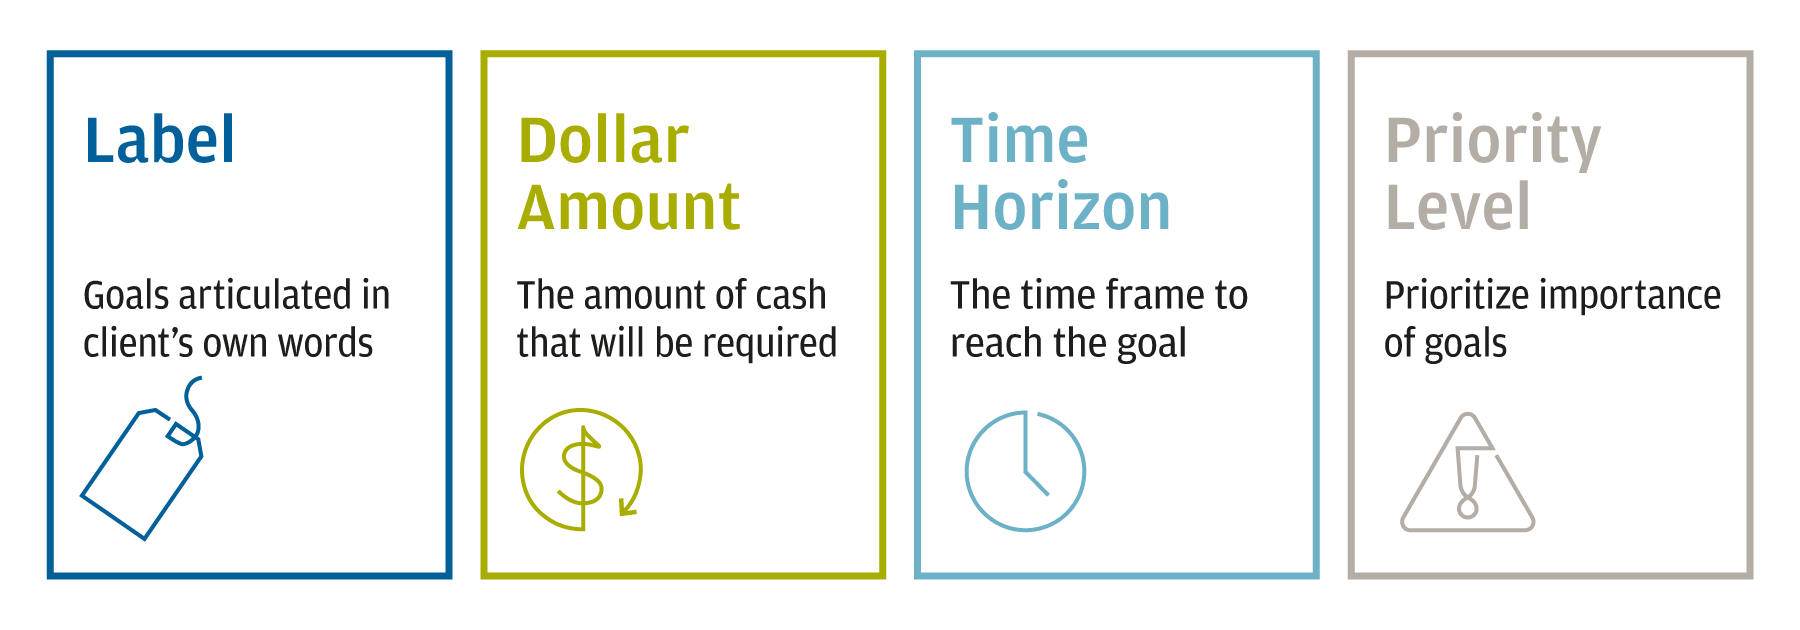 This graphic identifies four considerations for each bucket. The Label should articulate the goal in the client's own words. The Dollar Amount is the amount of cash that will be required. The Time Horizon is the time frame to reach the goal. The Priority Level should prioritize the importance of the goal.